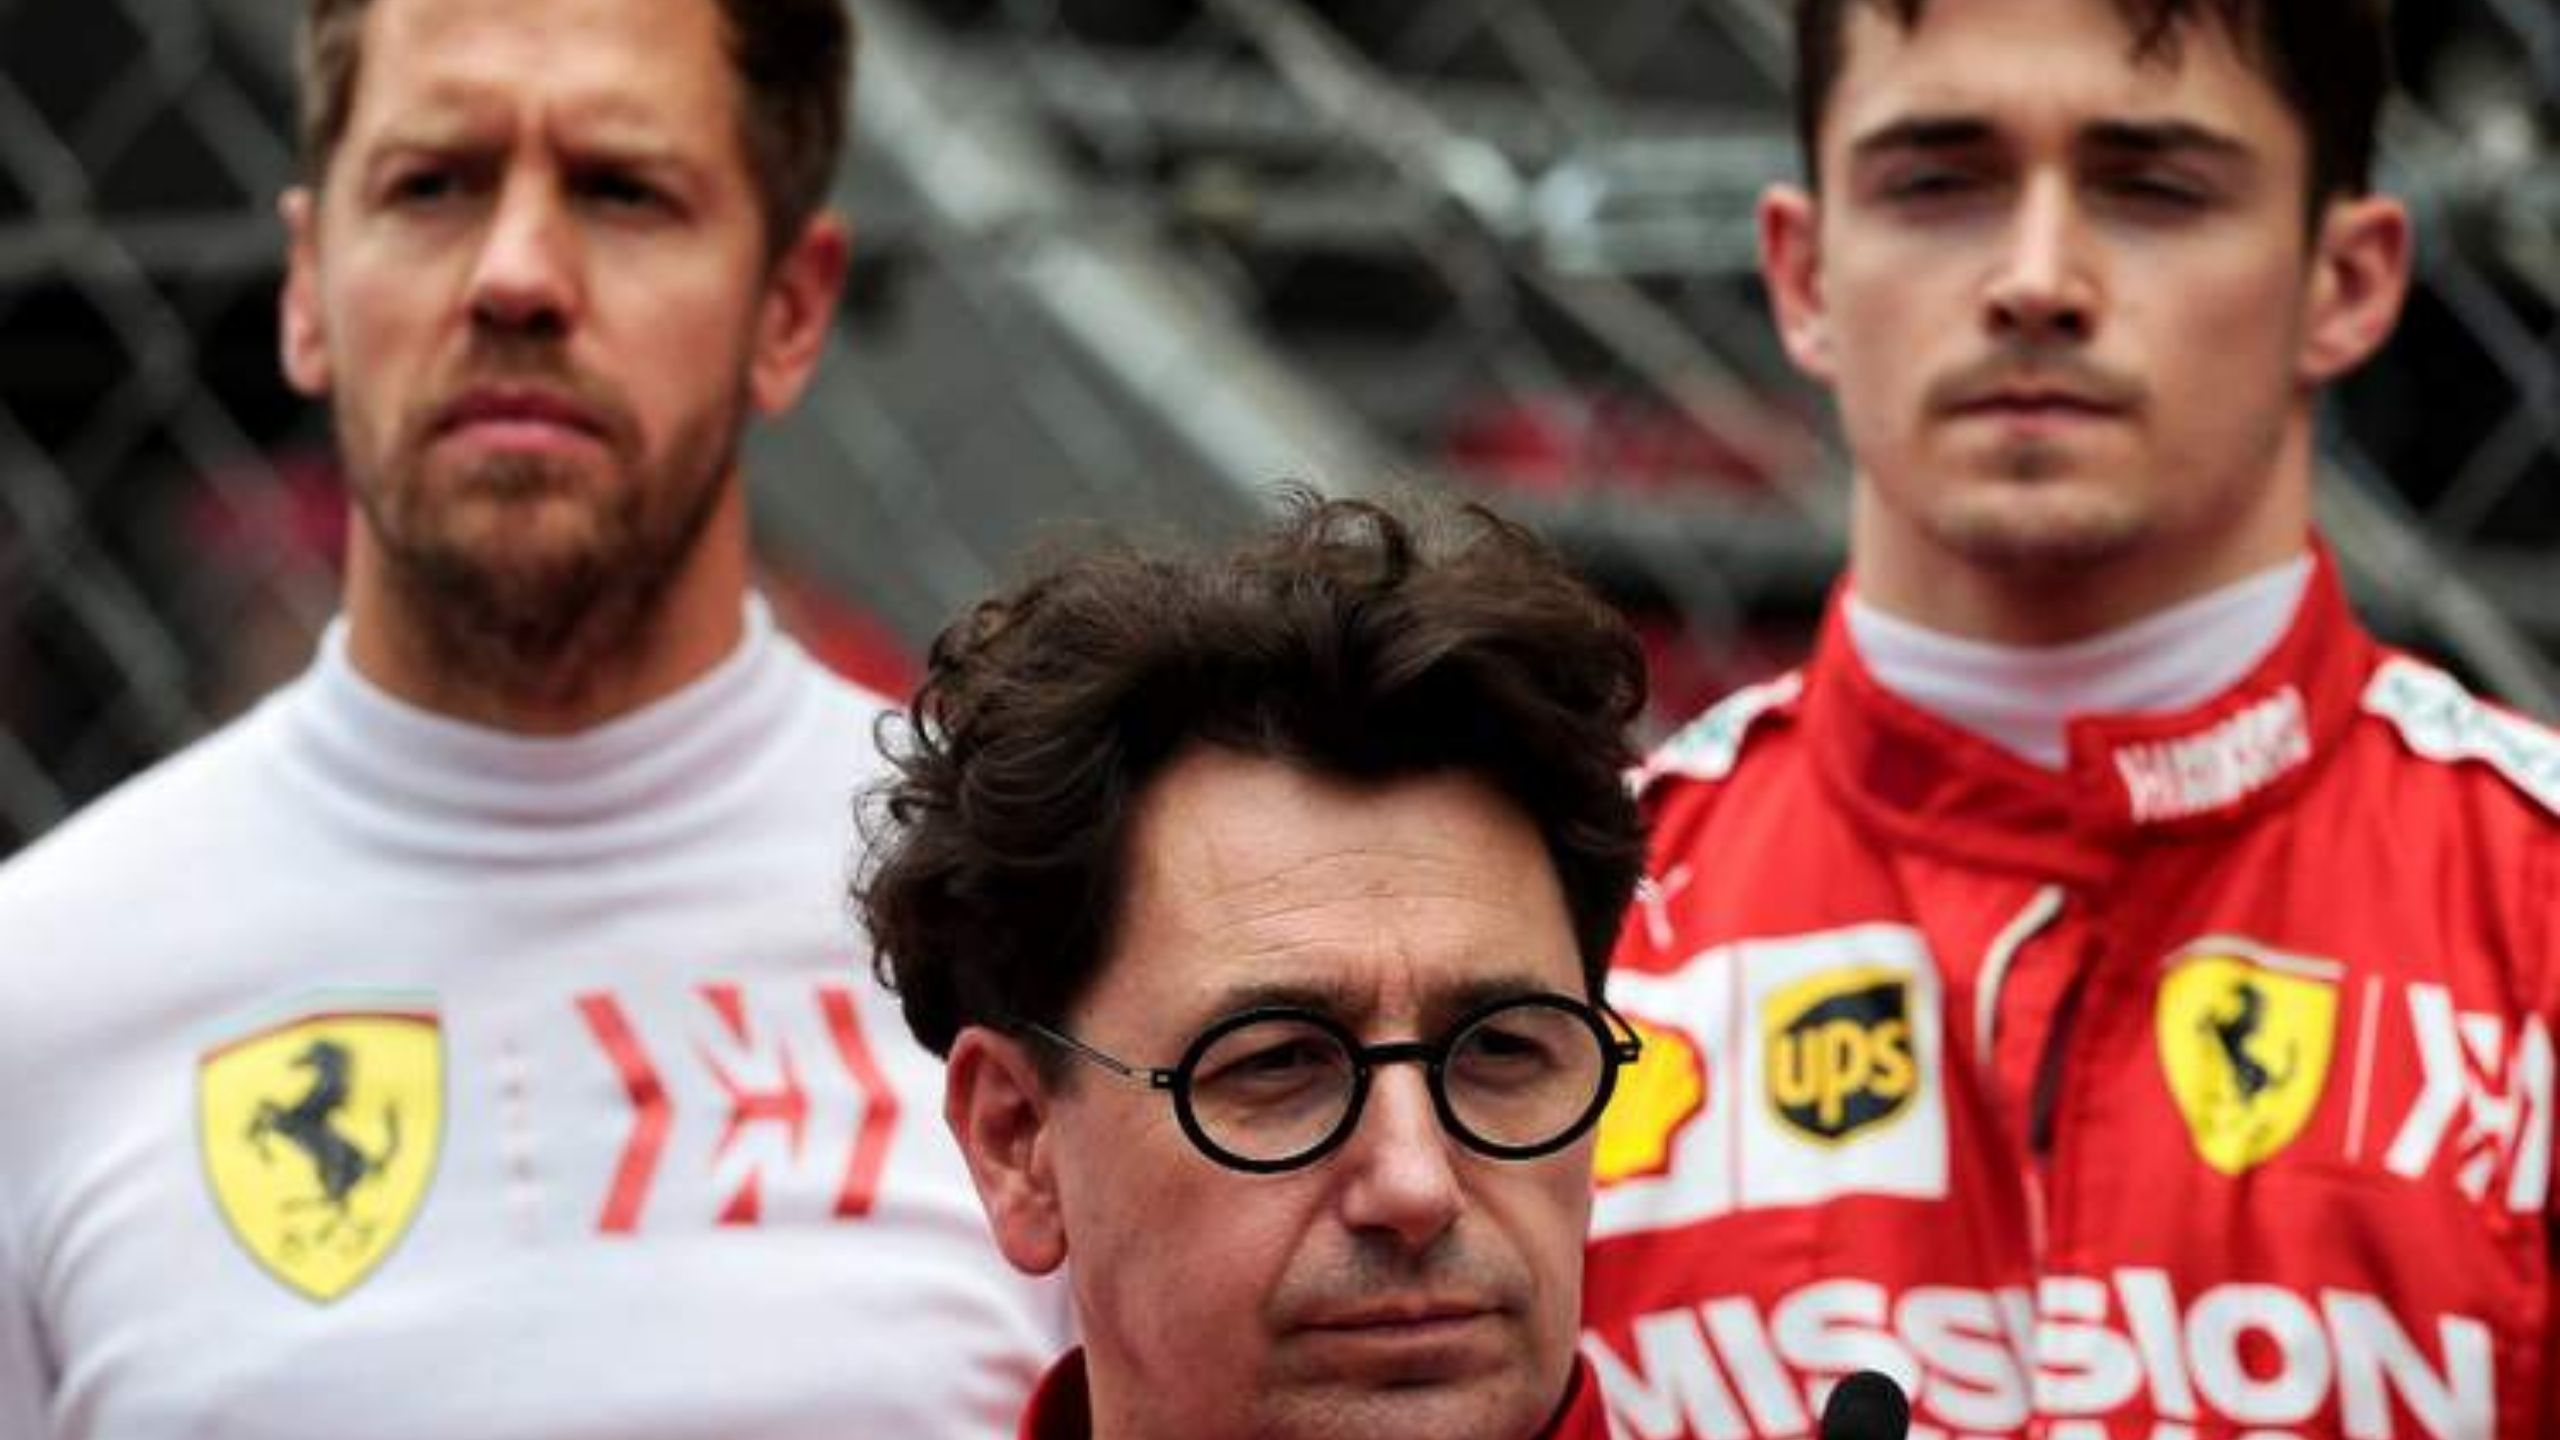 """""""Arrivabene really has a big heart"""" - Sebastian Vettel and Mattia Binotto did not get along too well at Ferrari, and unsurprisingly, the former has ignored the latter in his list of people who mattered during his Ferrari stint."""